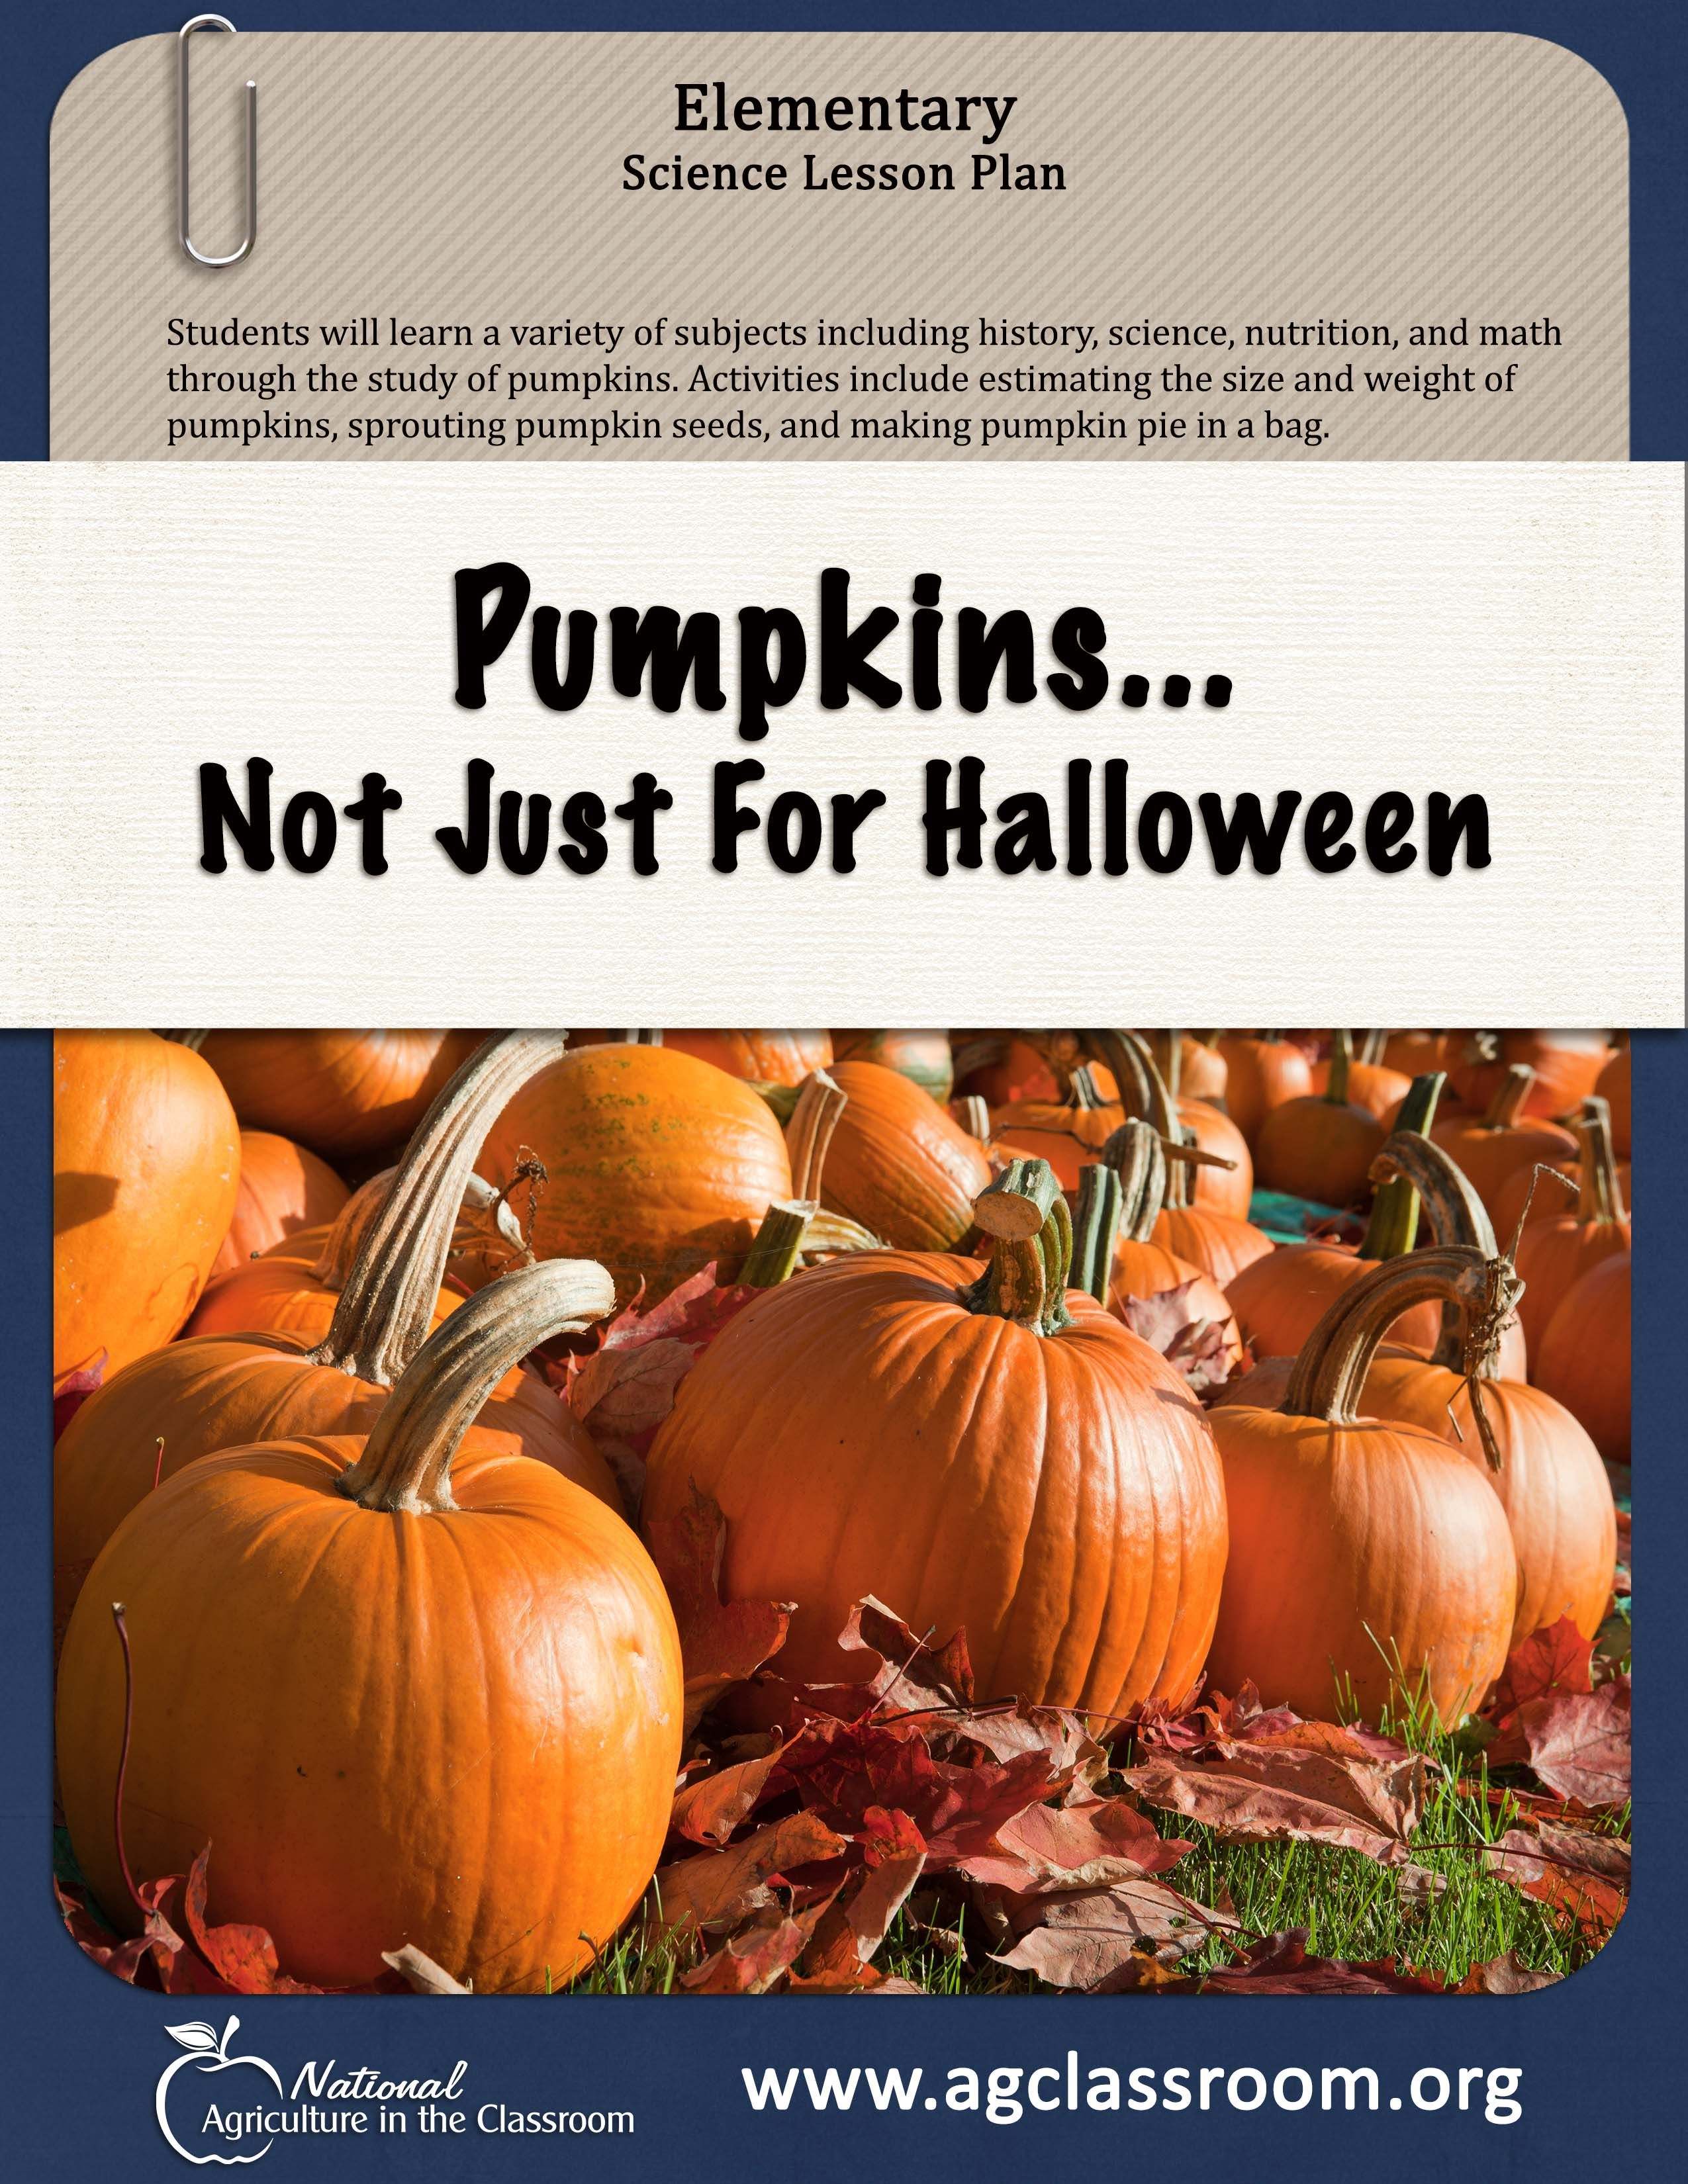 Elementary Science Lesson Teaching About Pumpkins And All